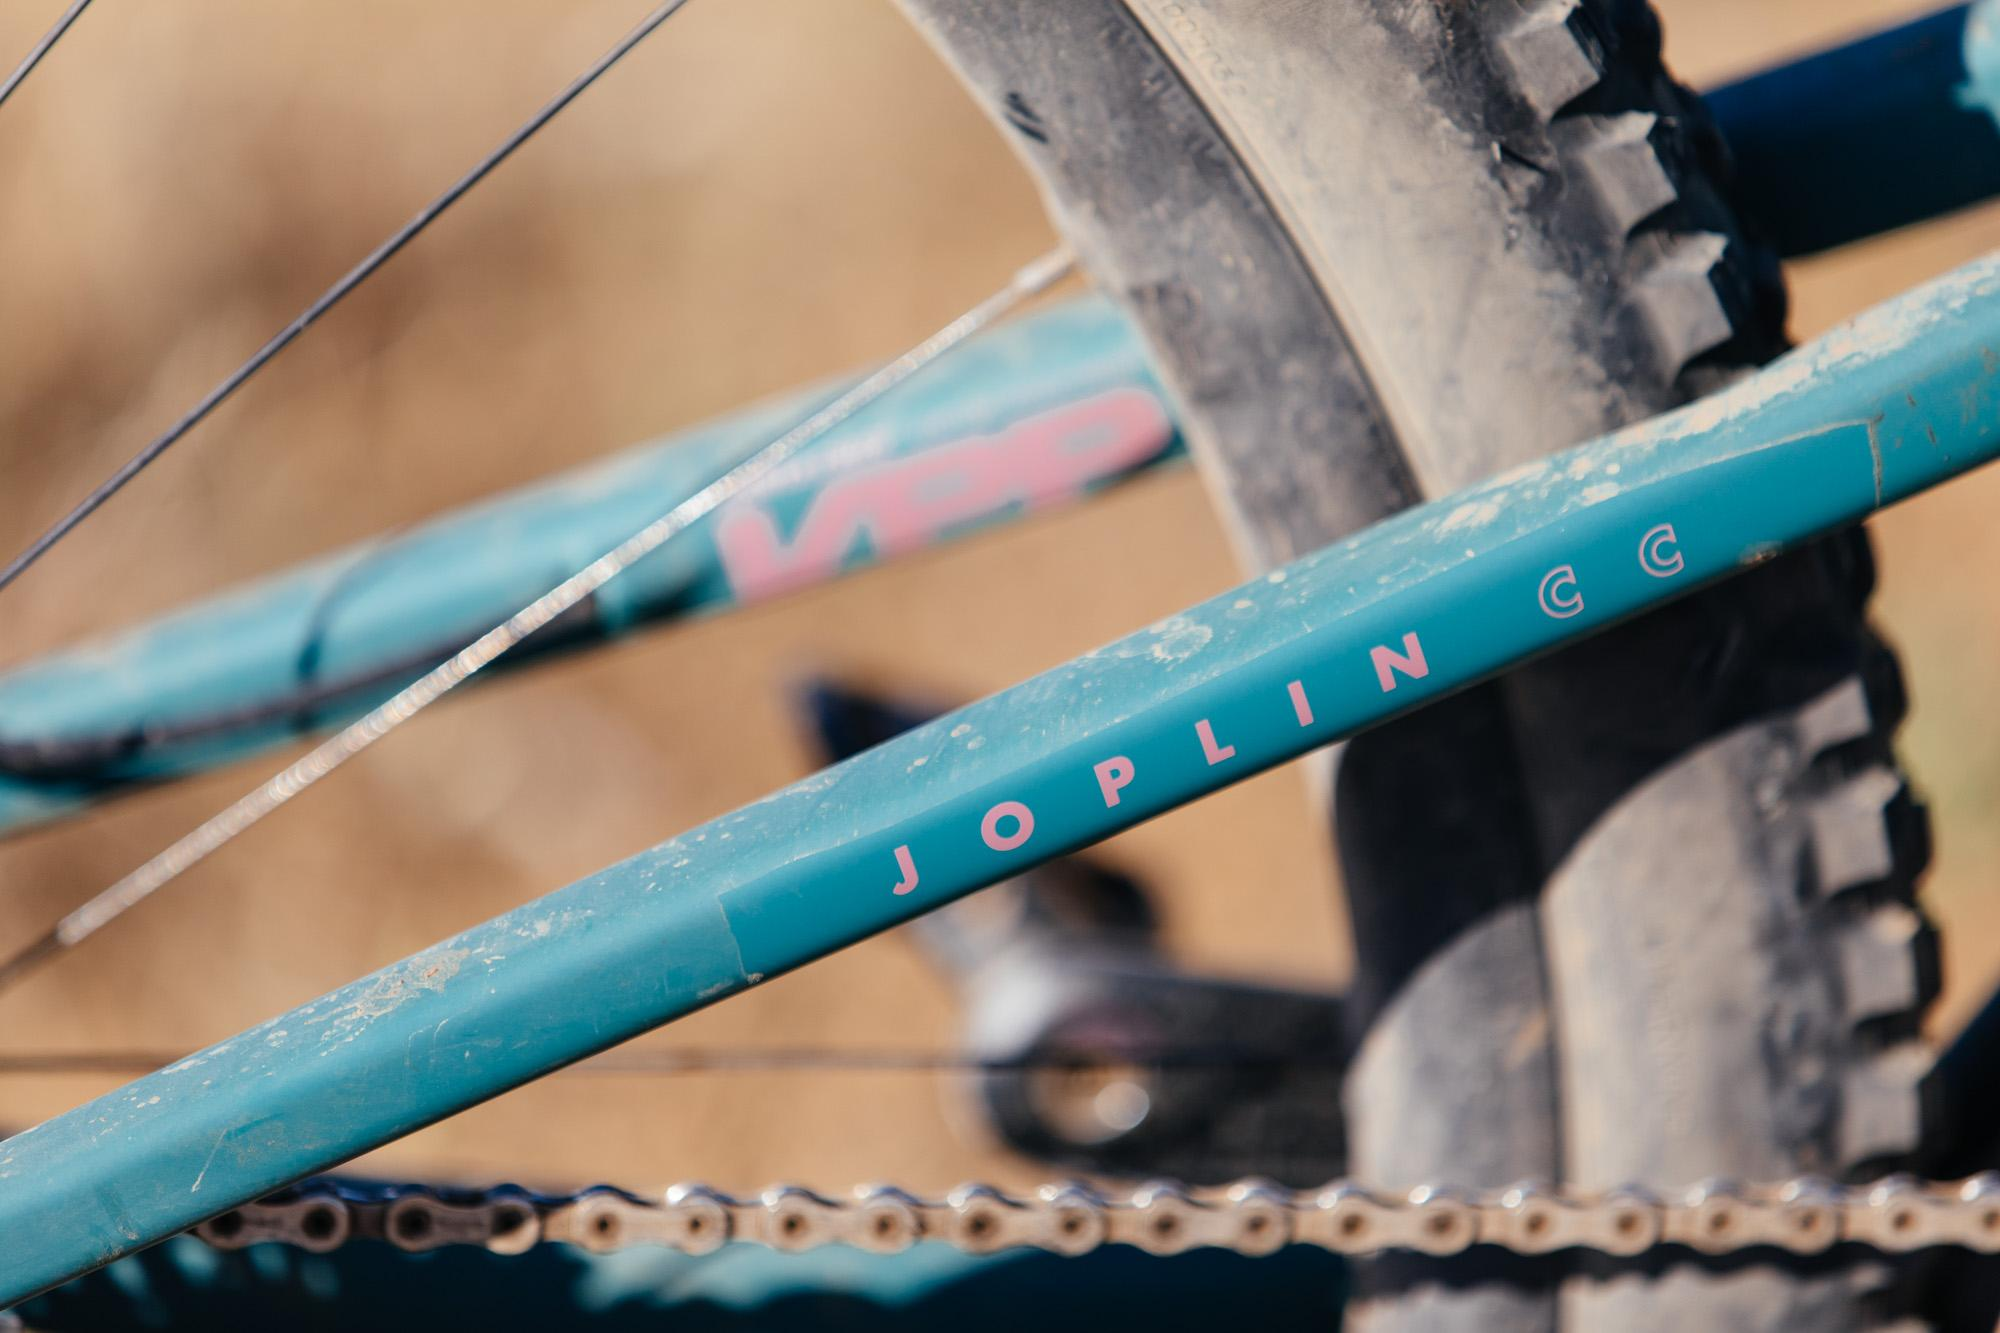 The Juliana Joplin CC 29er